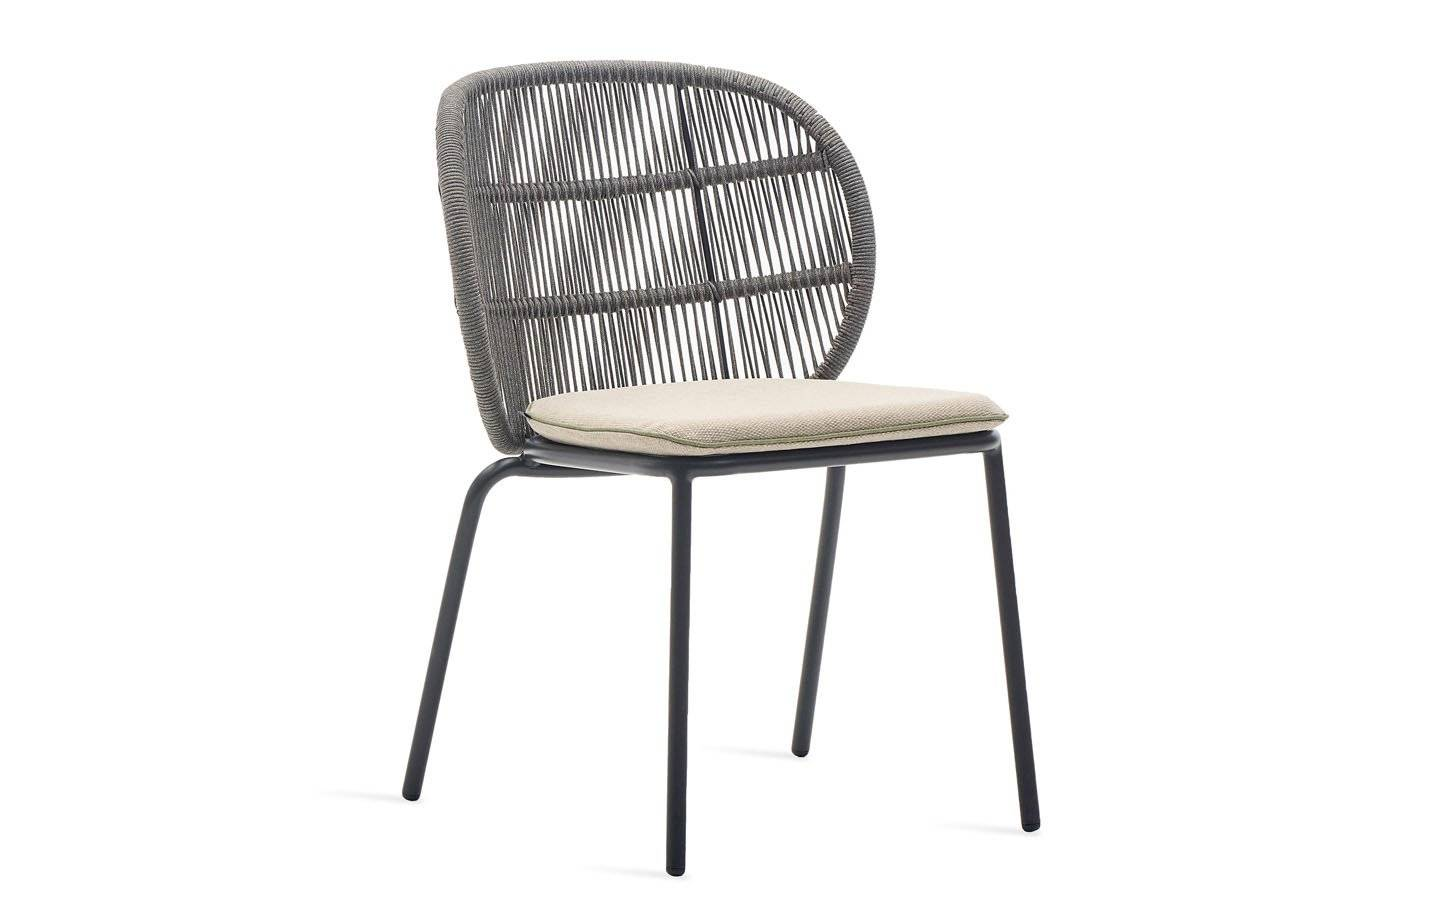 Vincent Kodo Rope Dining Side Chair by Vincent Sheppard Seat cushion - Taupe